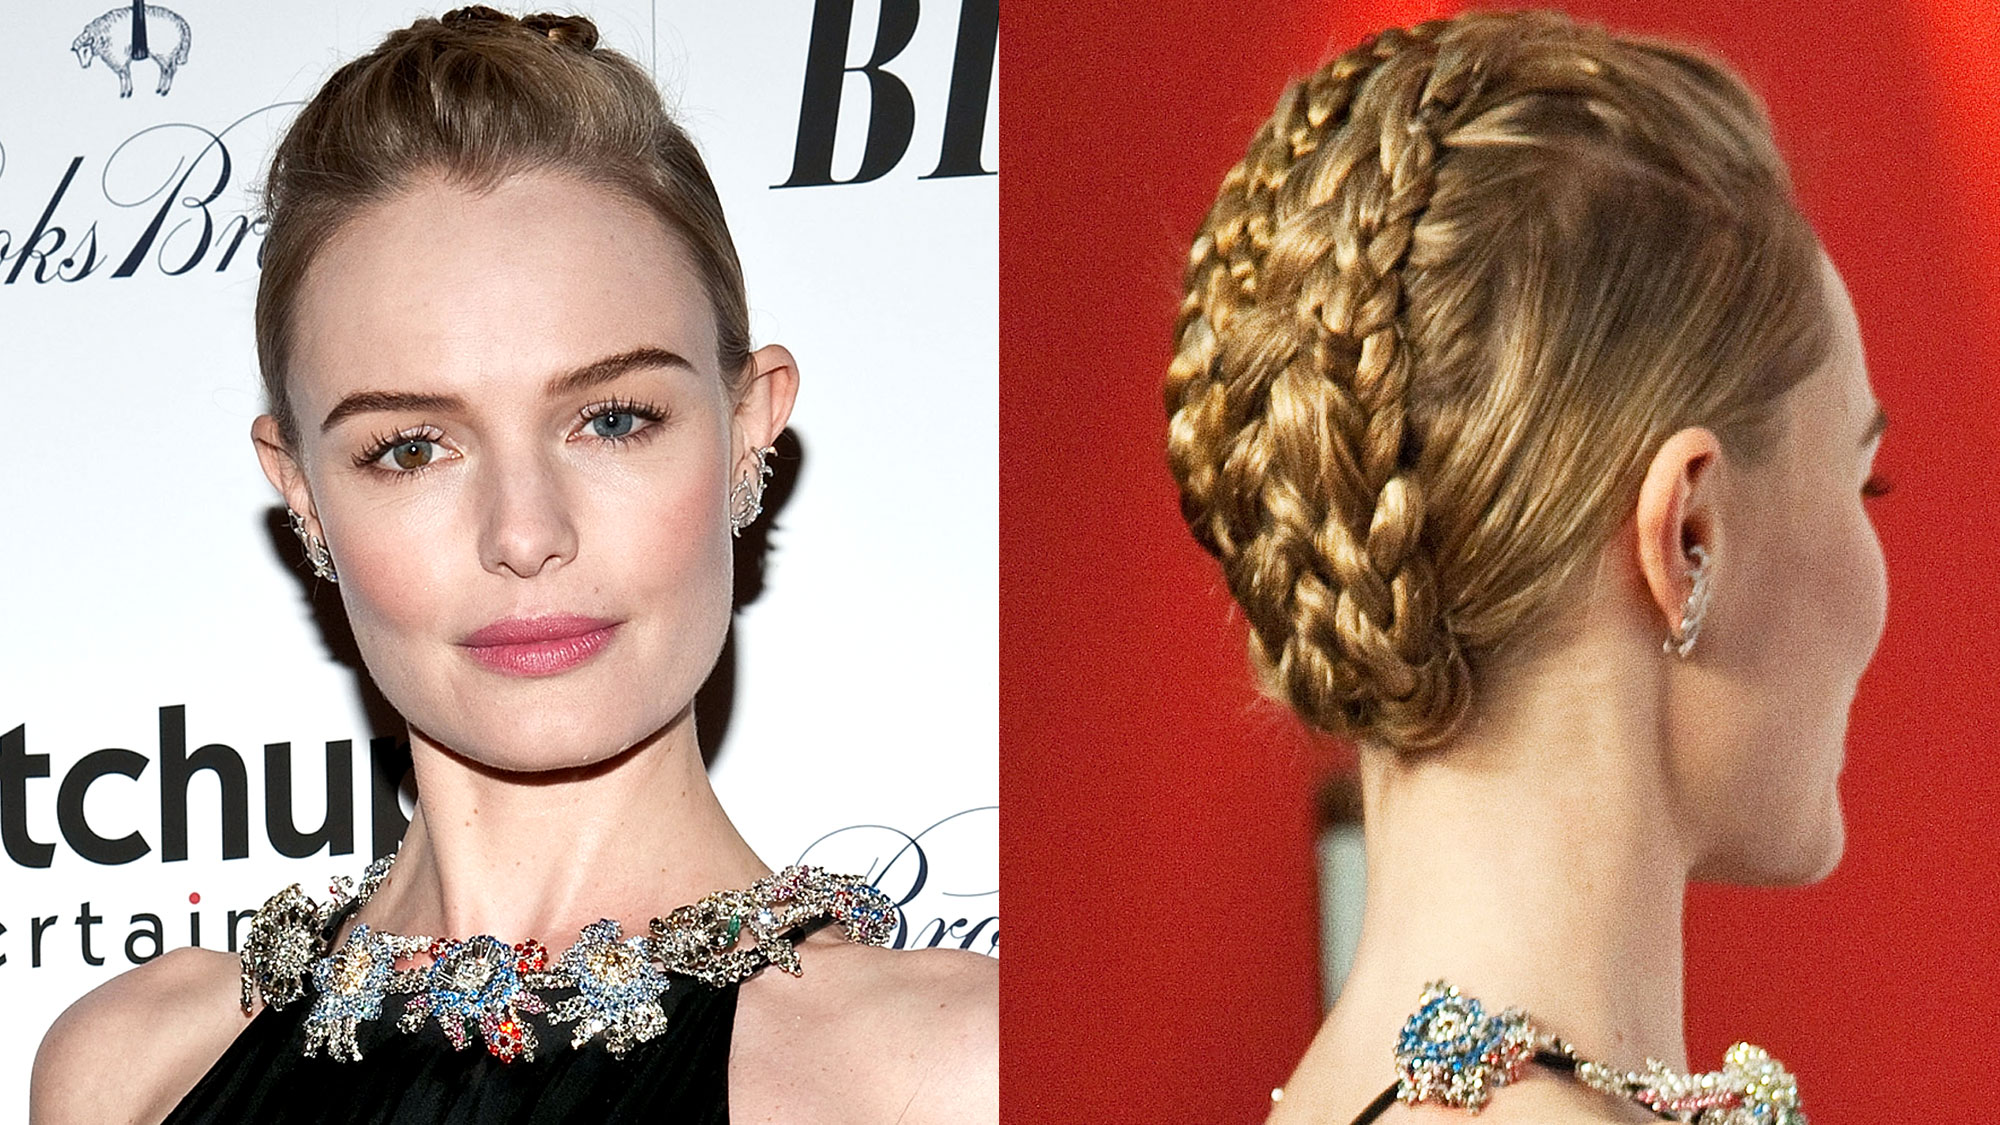 Fabulous 18 Best Braided Hairstyles Best Crown Side And French Braid Ideas Hairstyles For Women Draintrainus